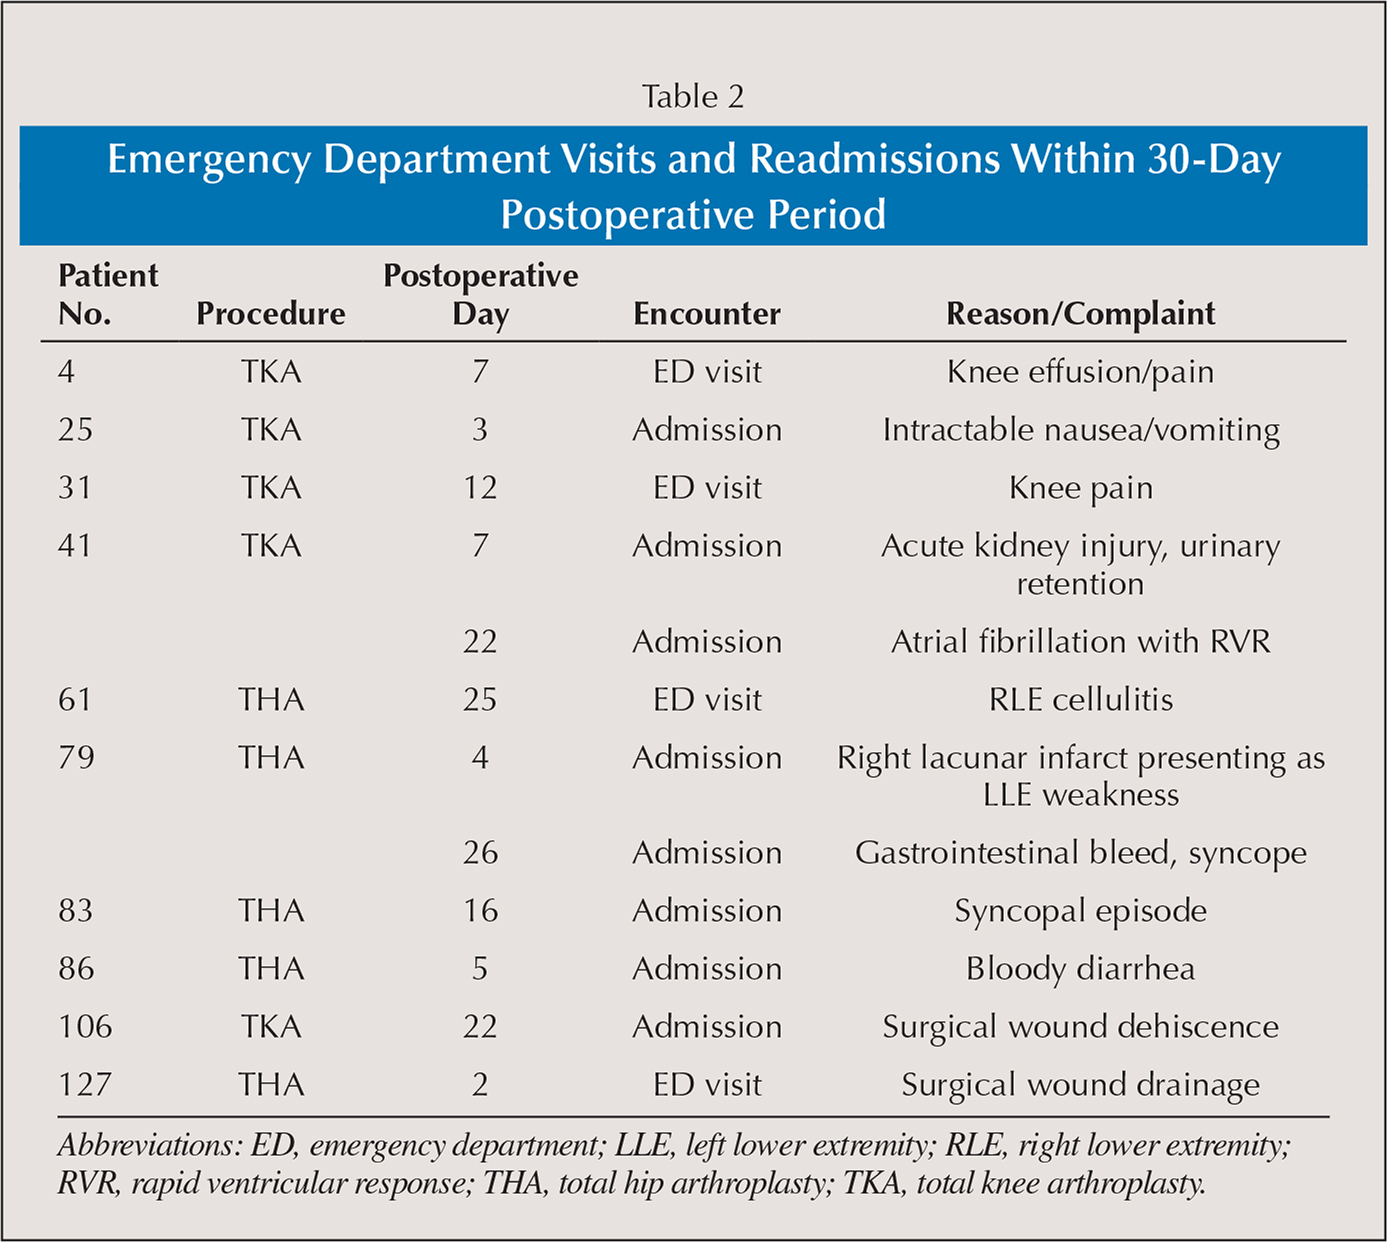 Emergency Department Visits and Readmissions Within 30-Day Postoperative Period